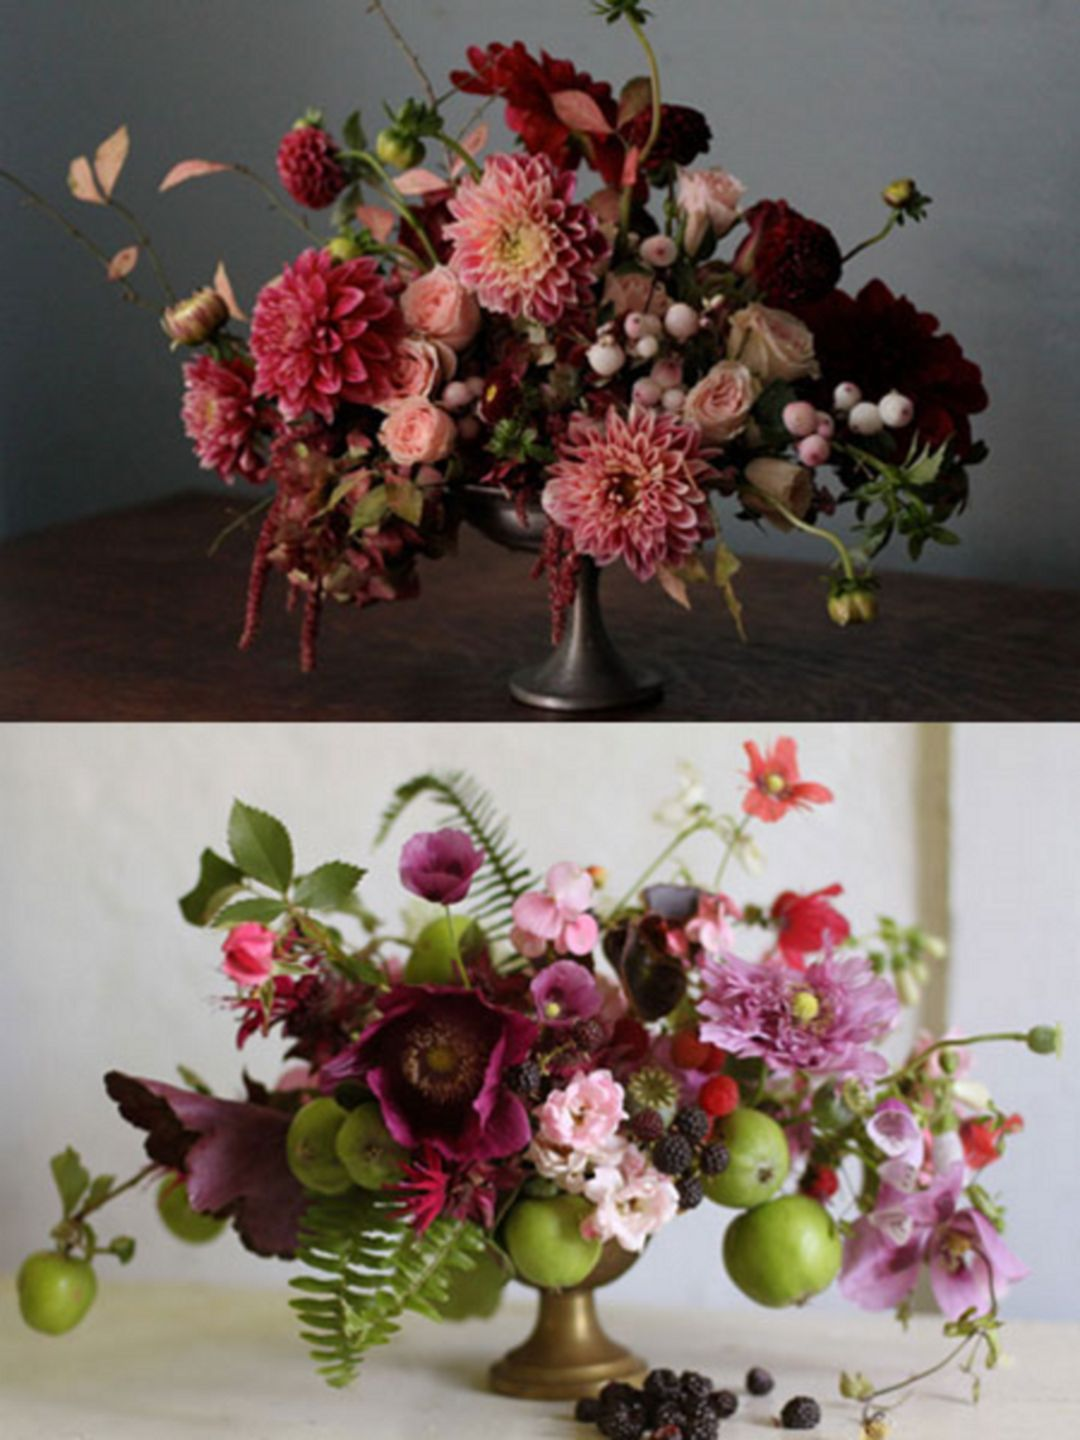 65 beautiful fall flower arrangements ideas that you can make it breathtaking 65 beautiful fall flower arrangements ideas that you can make it self https izmirmasajfo